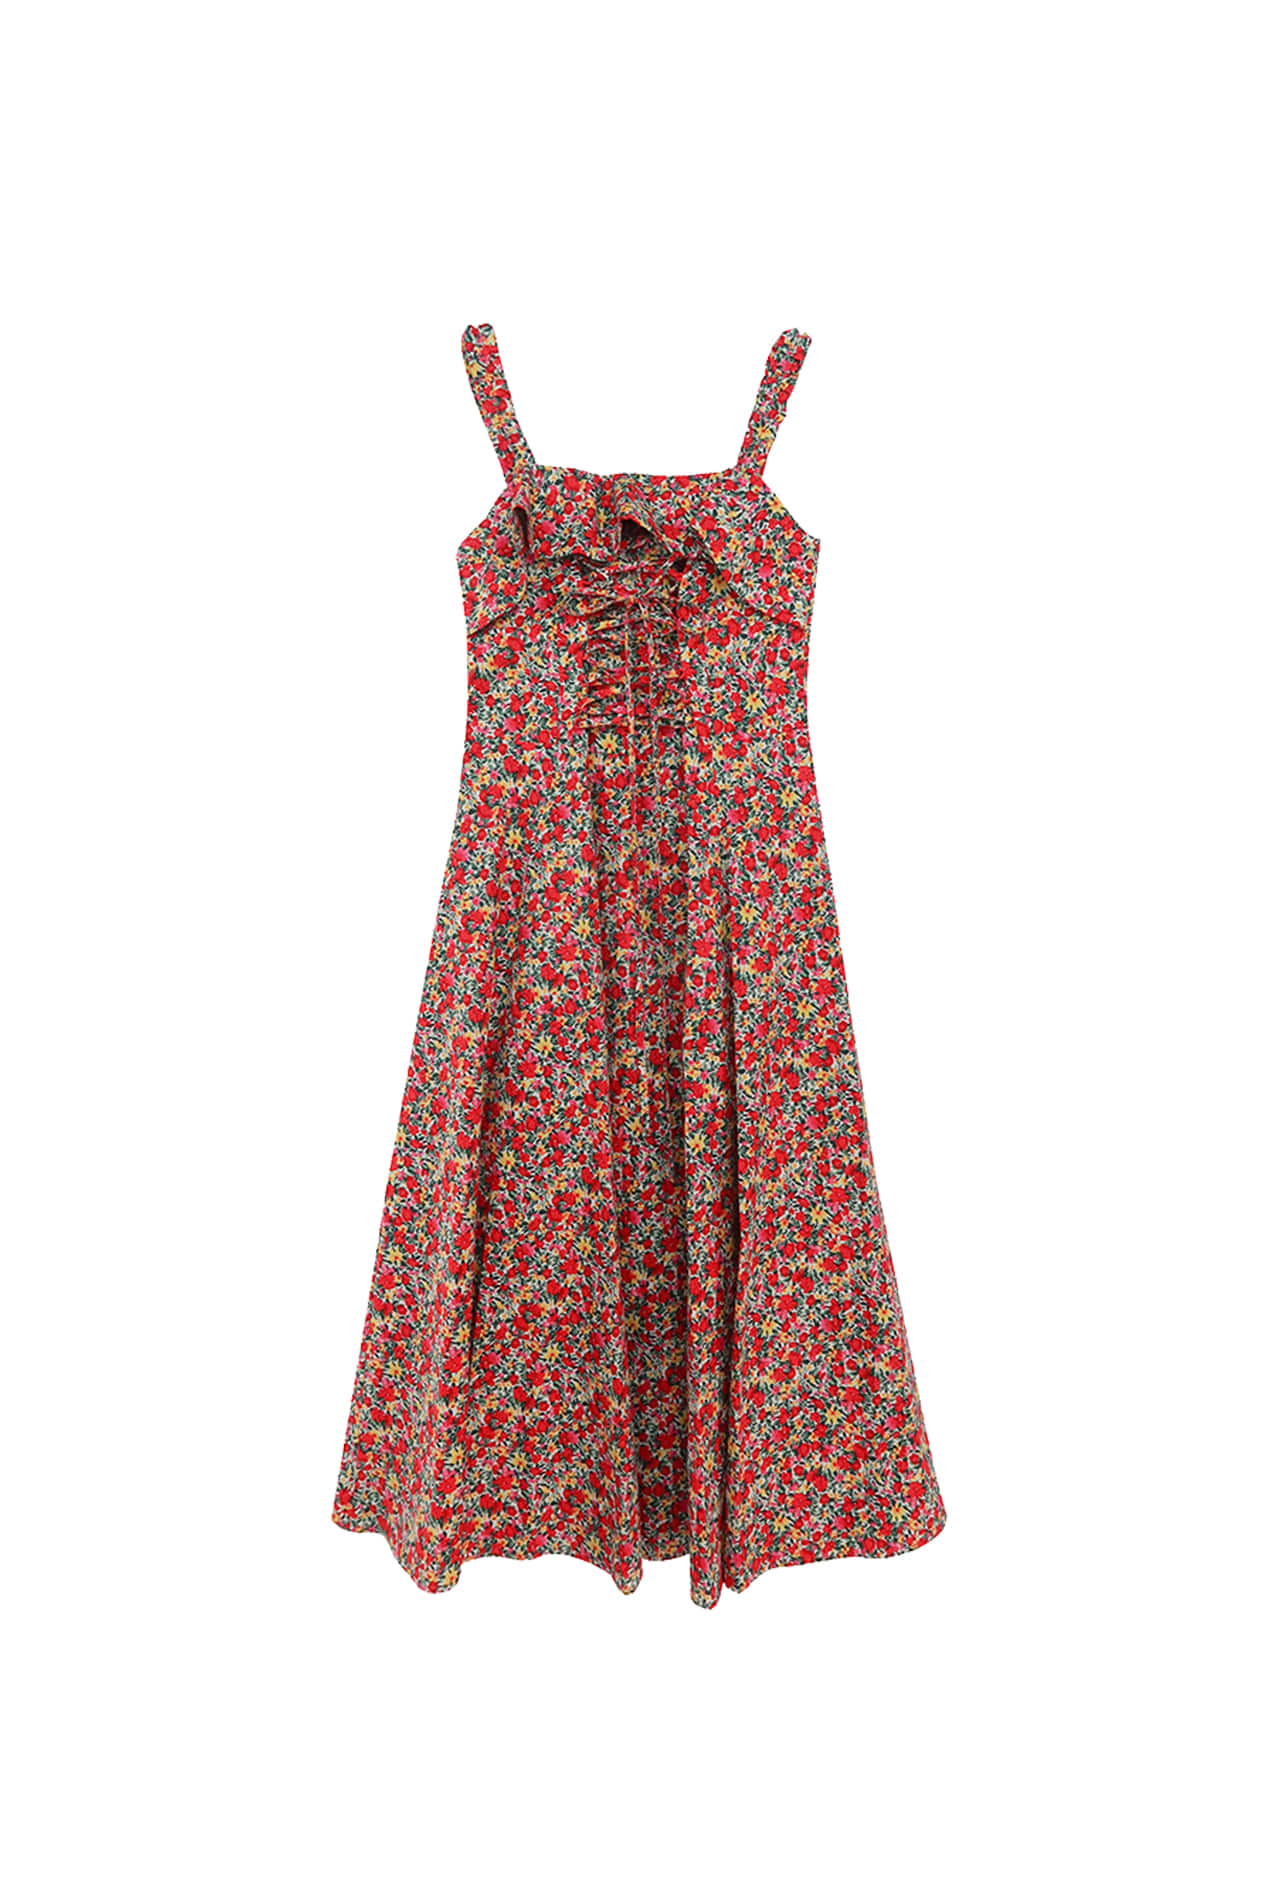 Poppy Dress (Poppy Red)